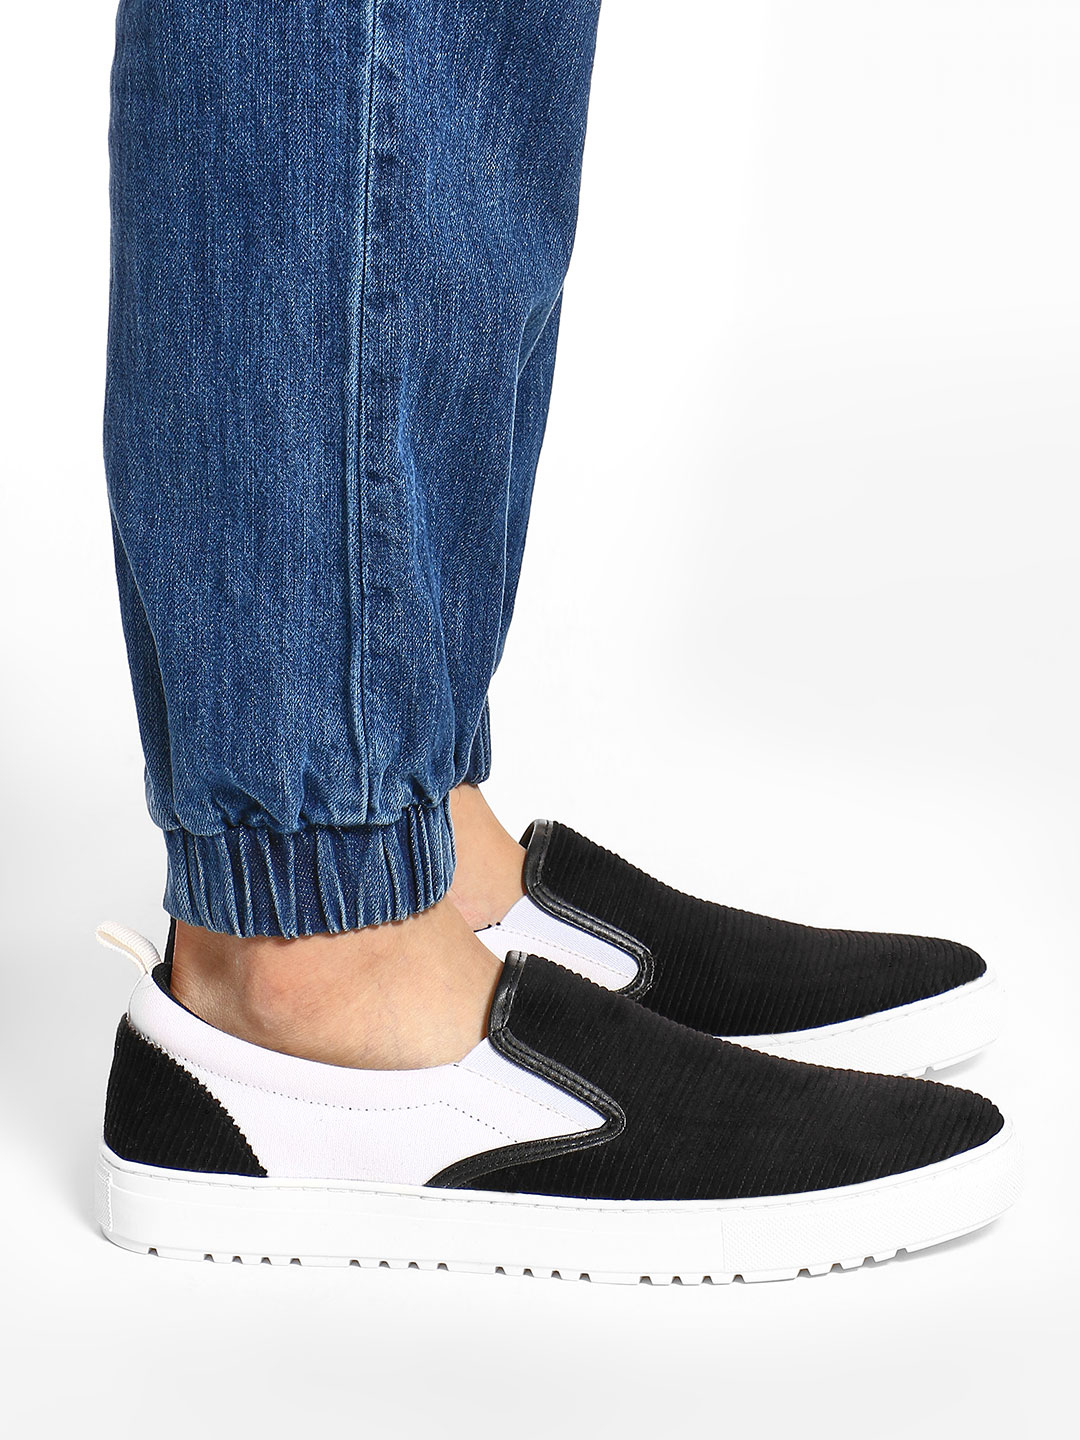 KOOVS Black Velour Panel Slip-On Shoes 1